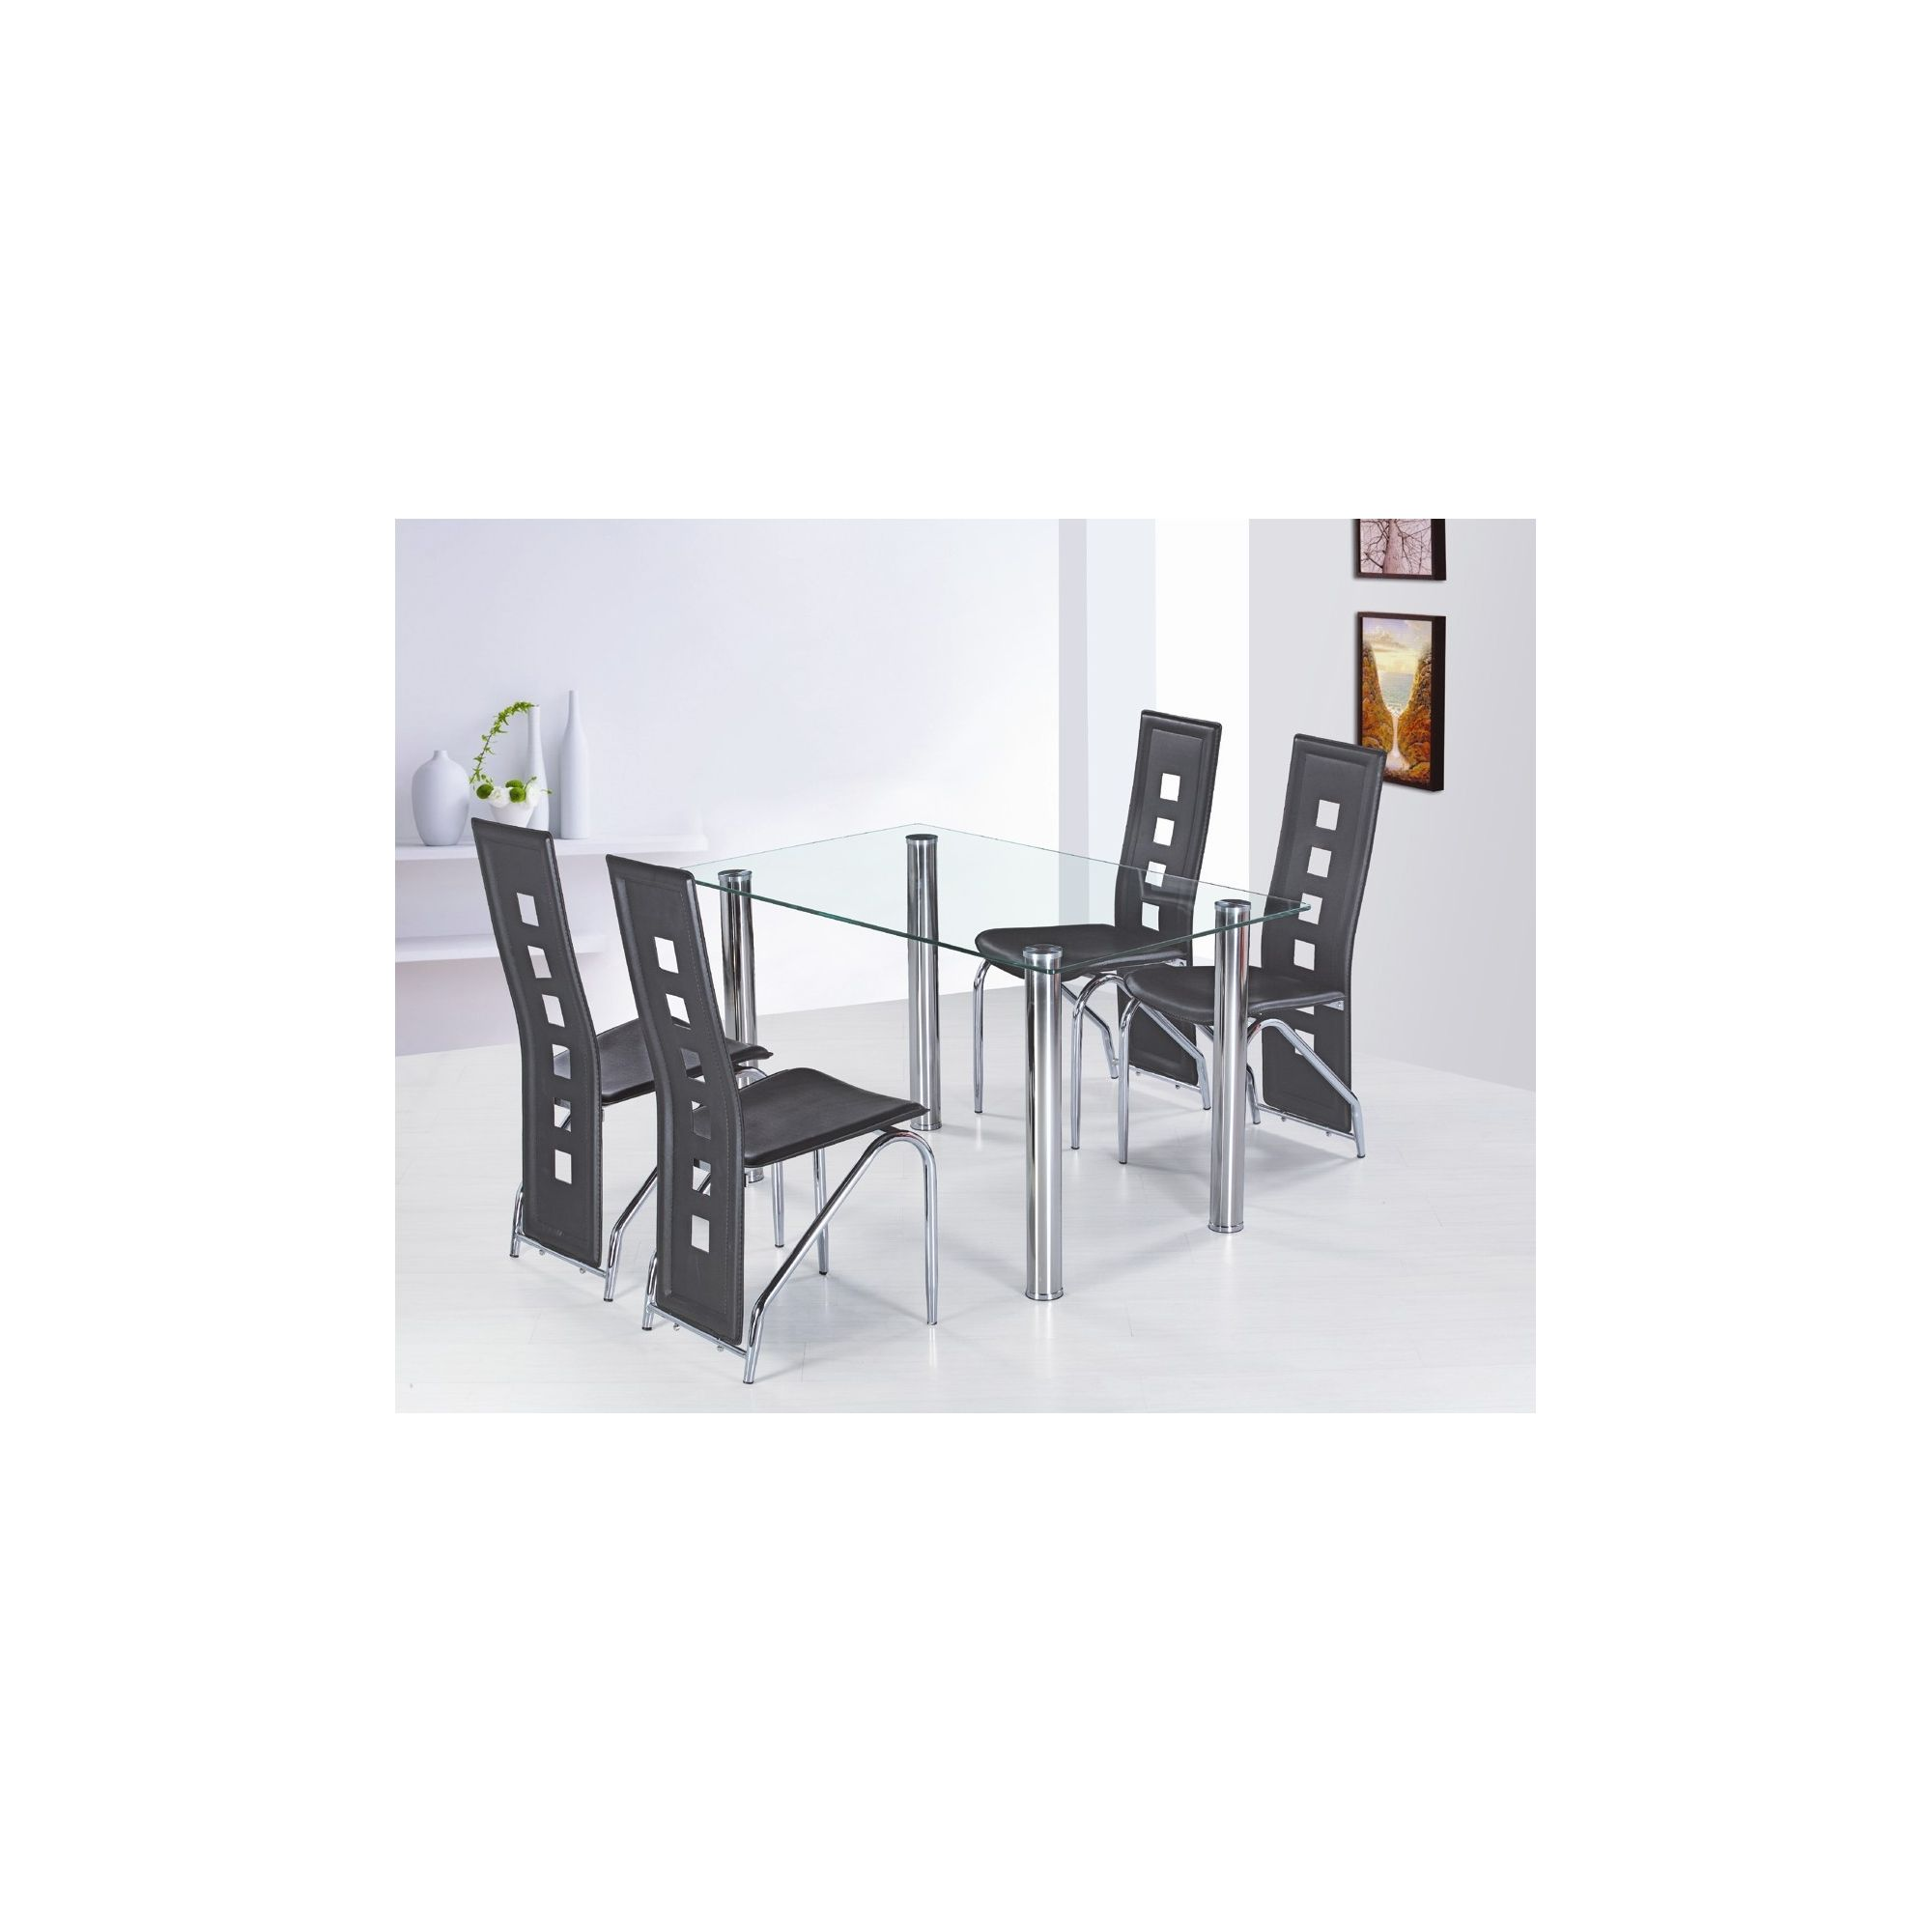 G&P Furniture 5 Piece Garda Rectangular Dining Set - Black at Tesco Direct